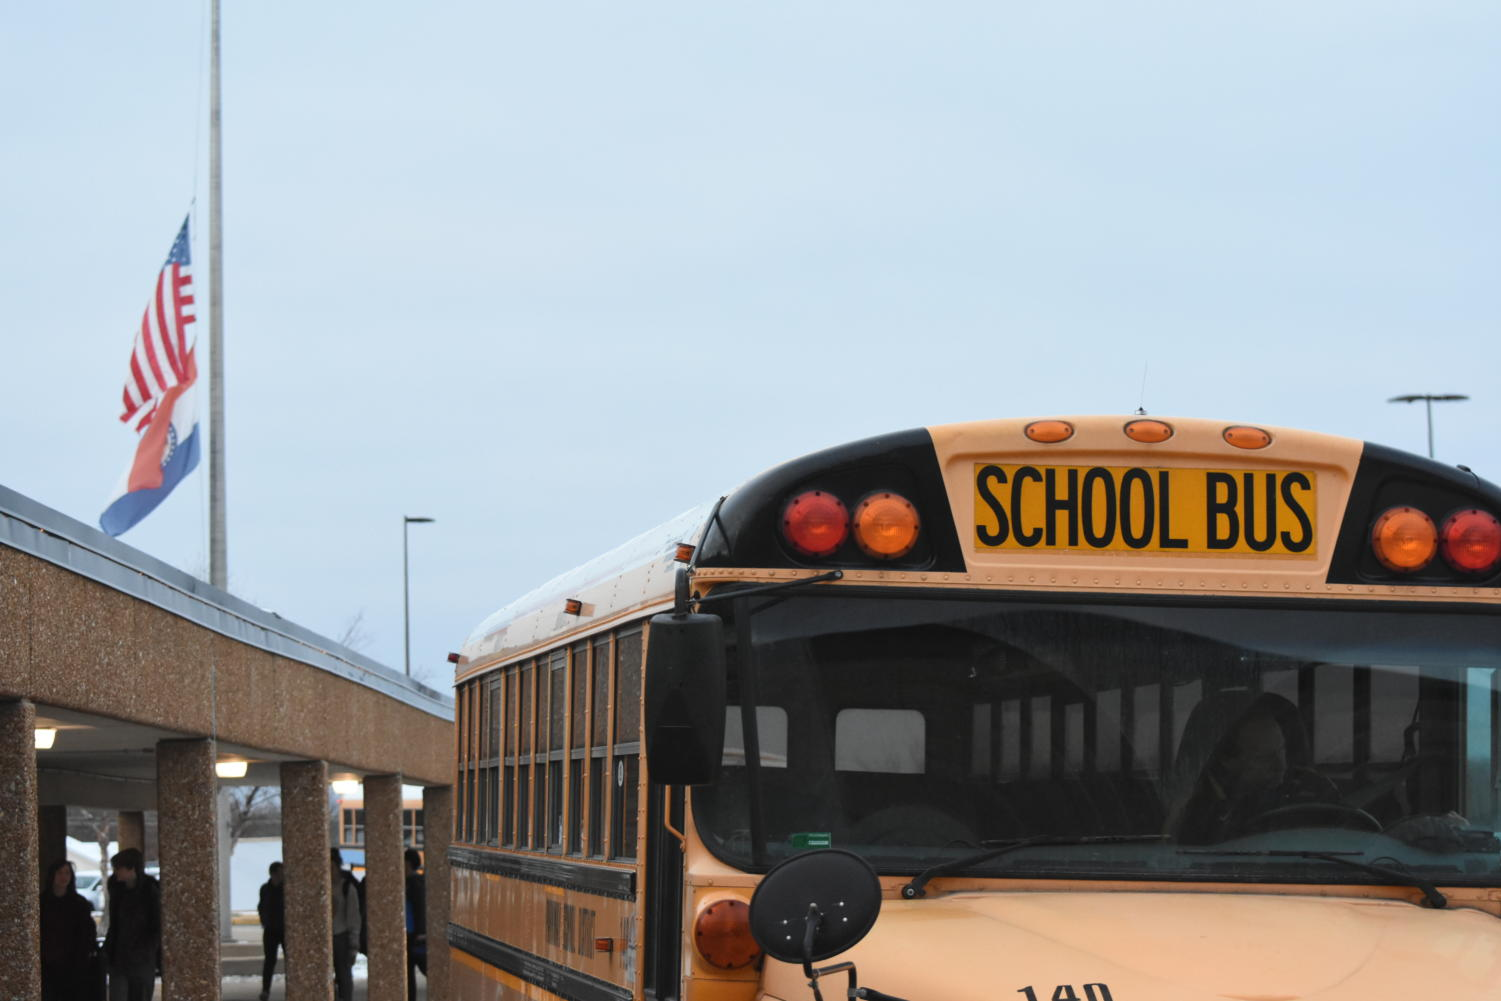 A Parkway school bus waits outside the building's front entrance.